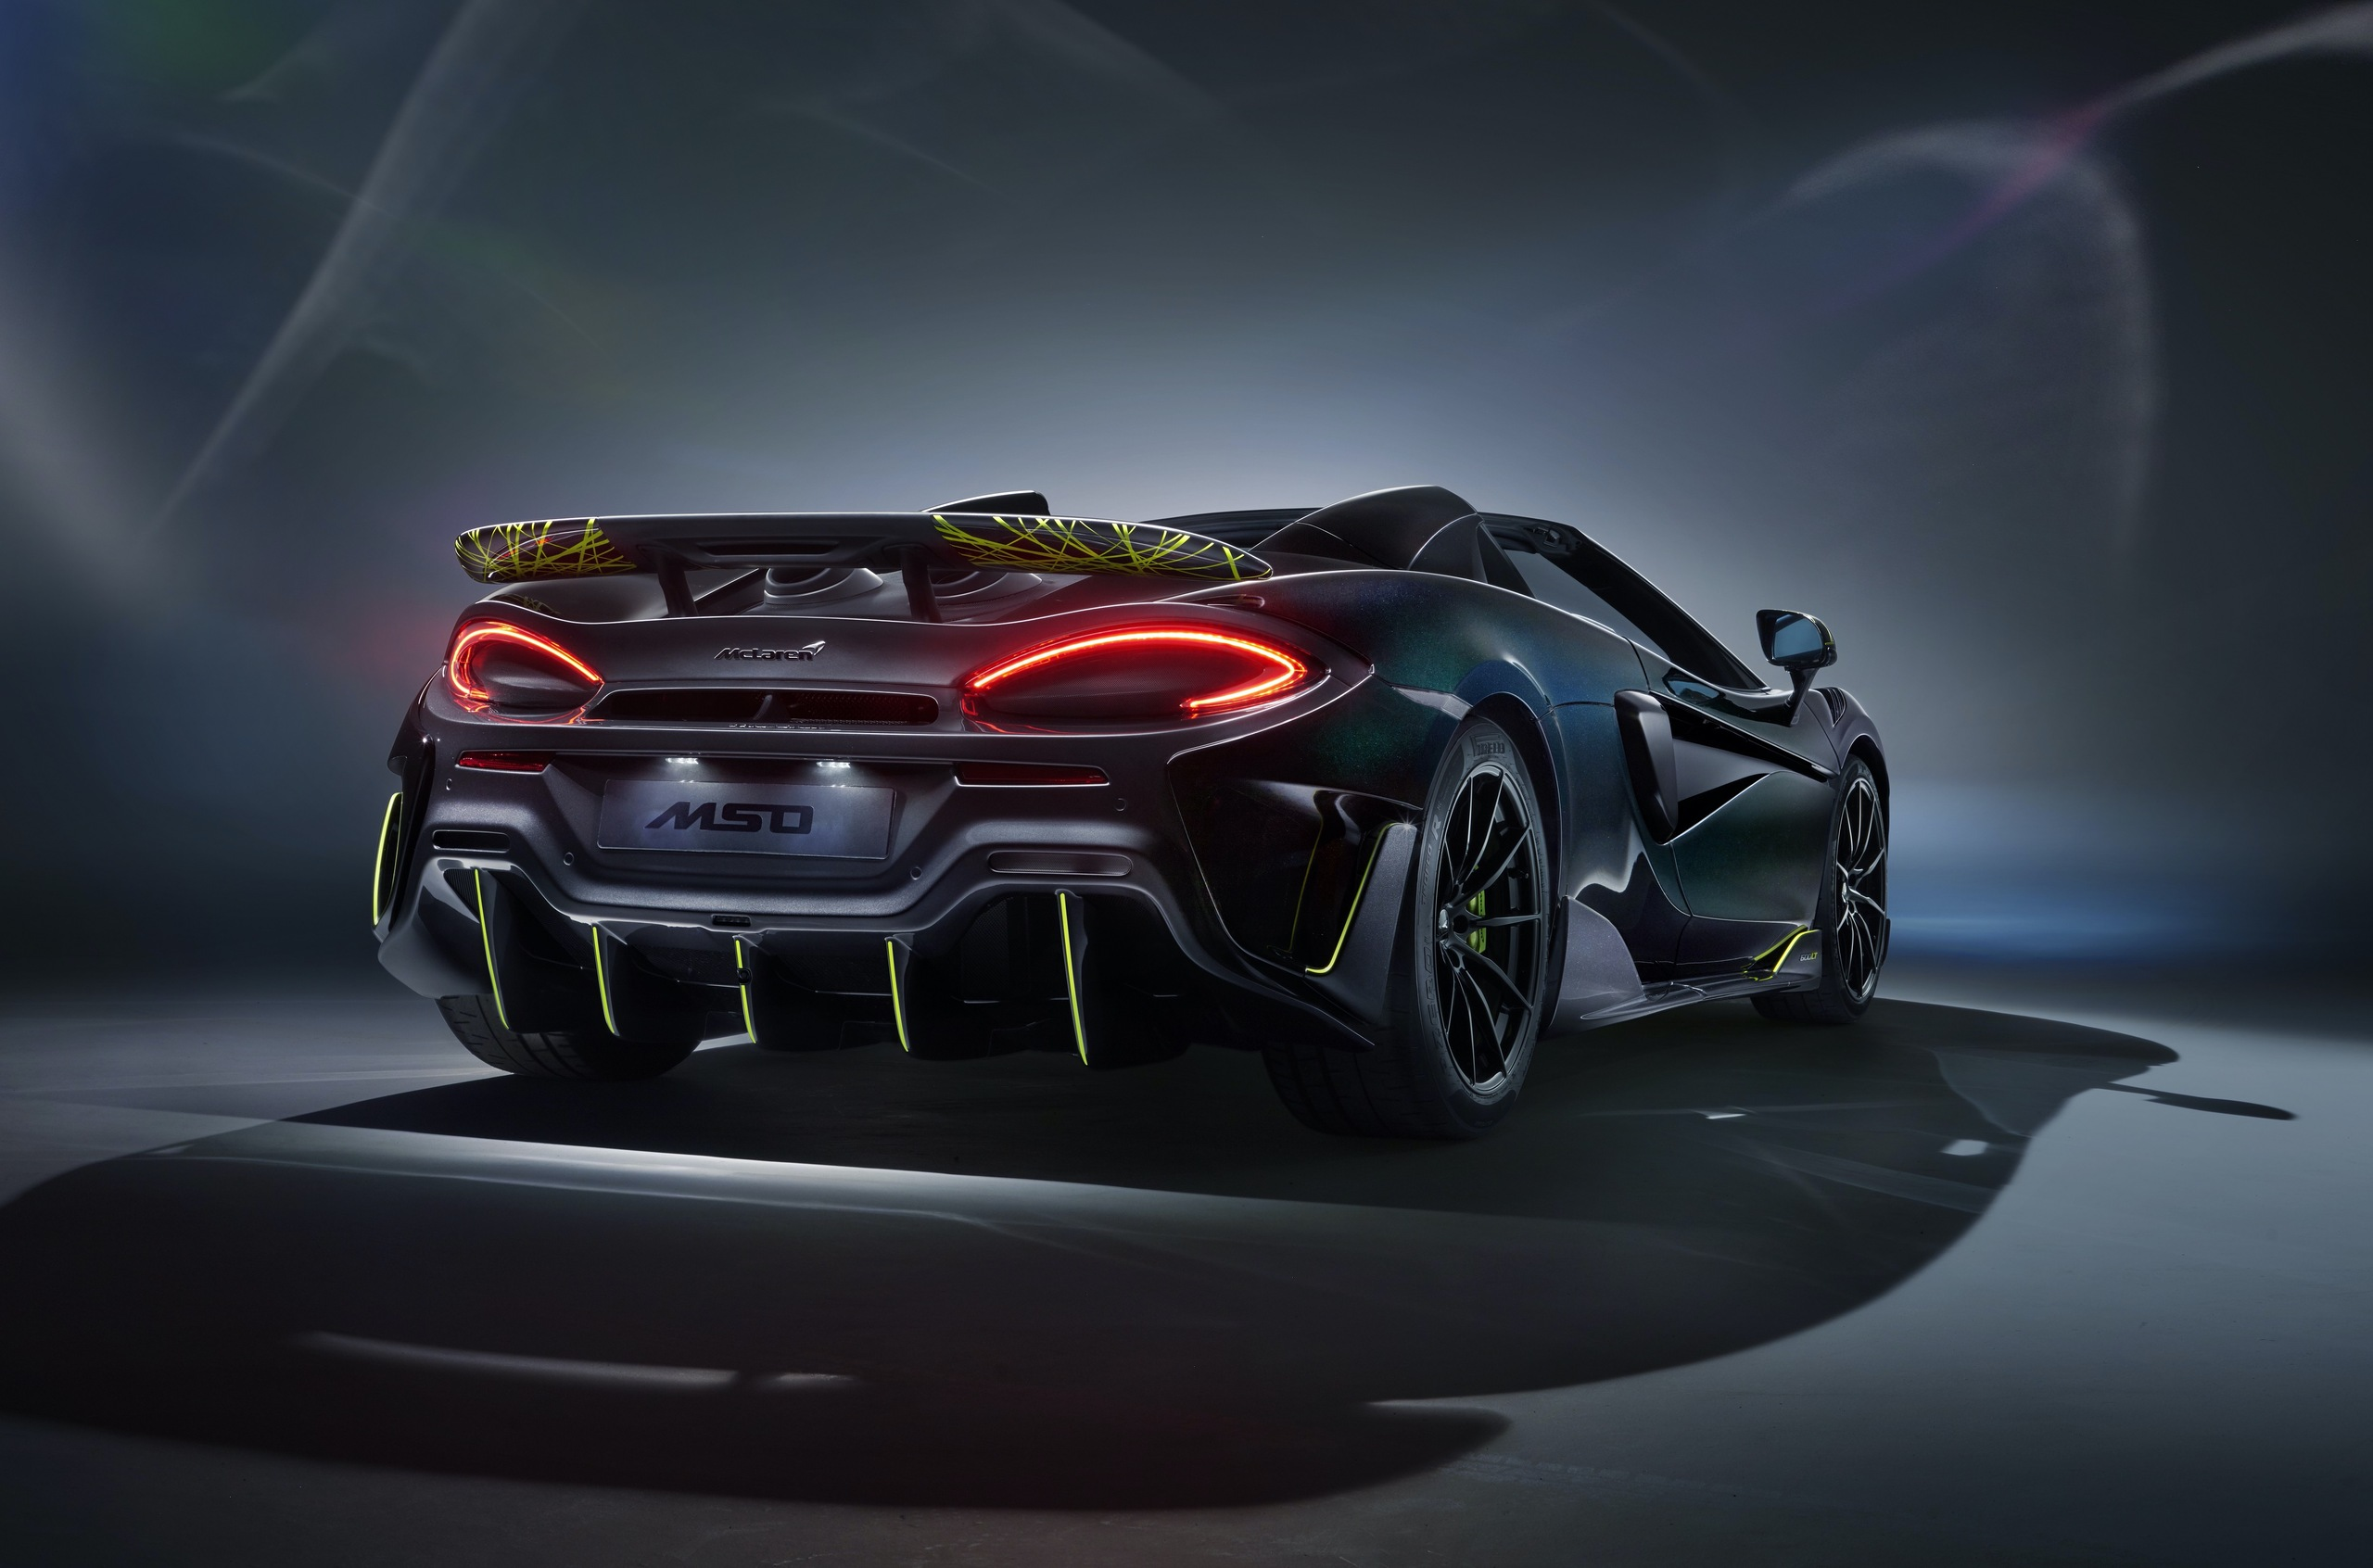 McLaren and MSO have joined efforts to produce McLaren 600LT Spider Segestria Borealis, the farewell edition of the British roadster meant for sale in the United States. The batch consists of only 12 cars and borrows its name from the infamously deadly tube web spider.